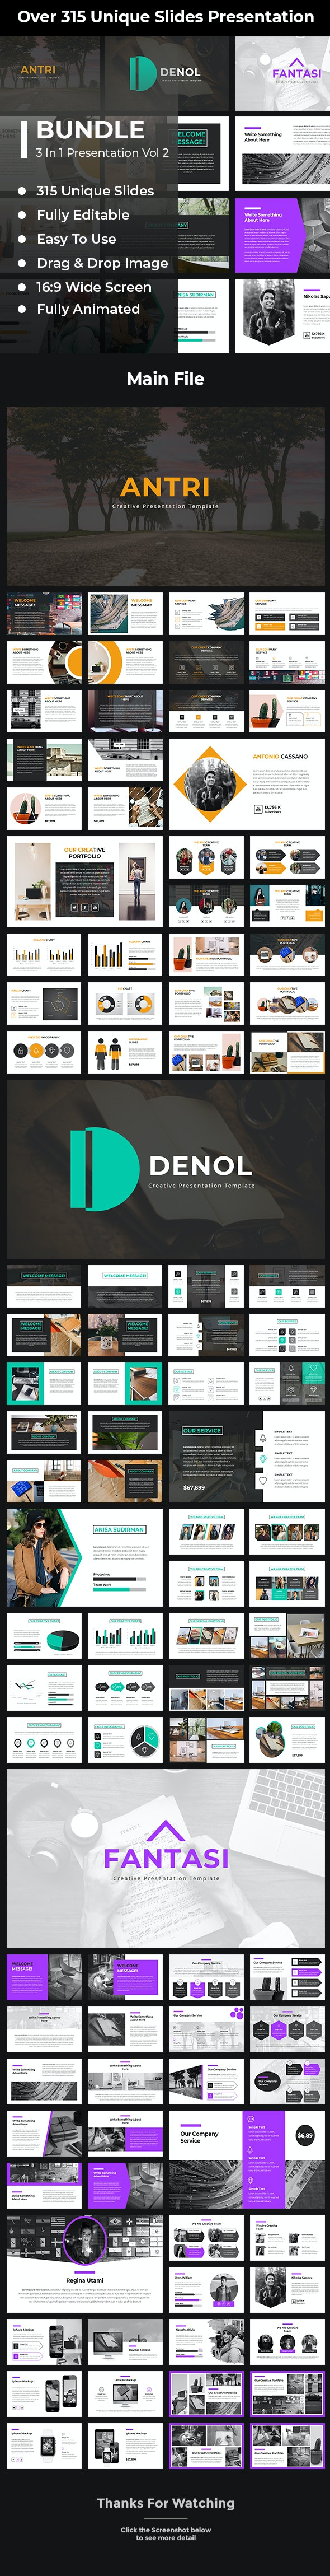 Bundle 3 in 1 Power Point Template Vol 2 - PowerPoint Templates Presentation Templates